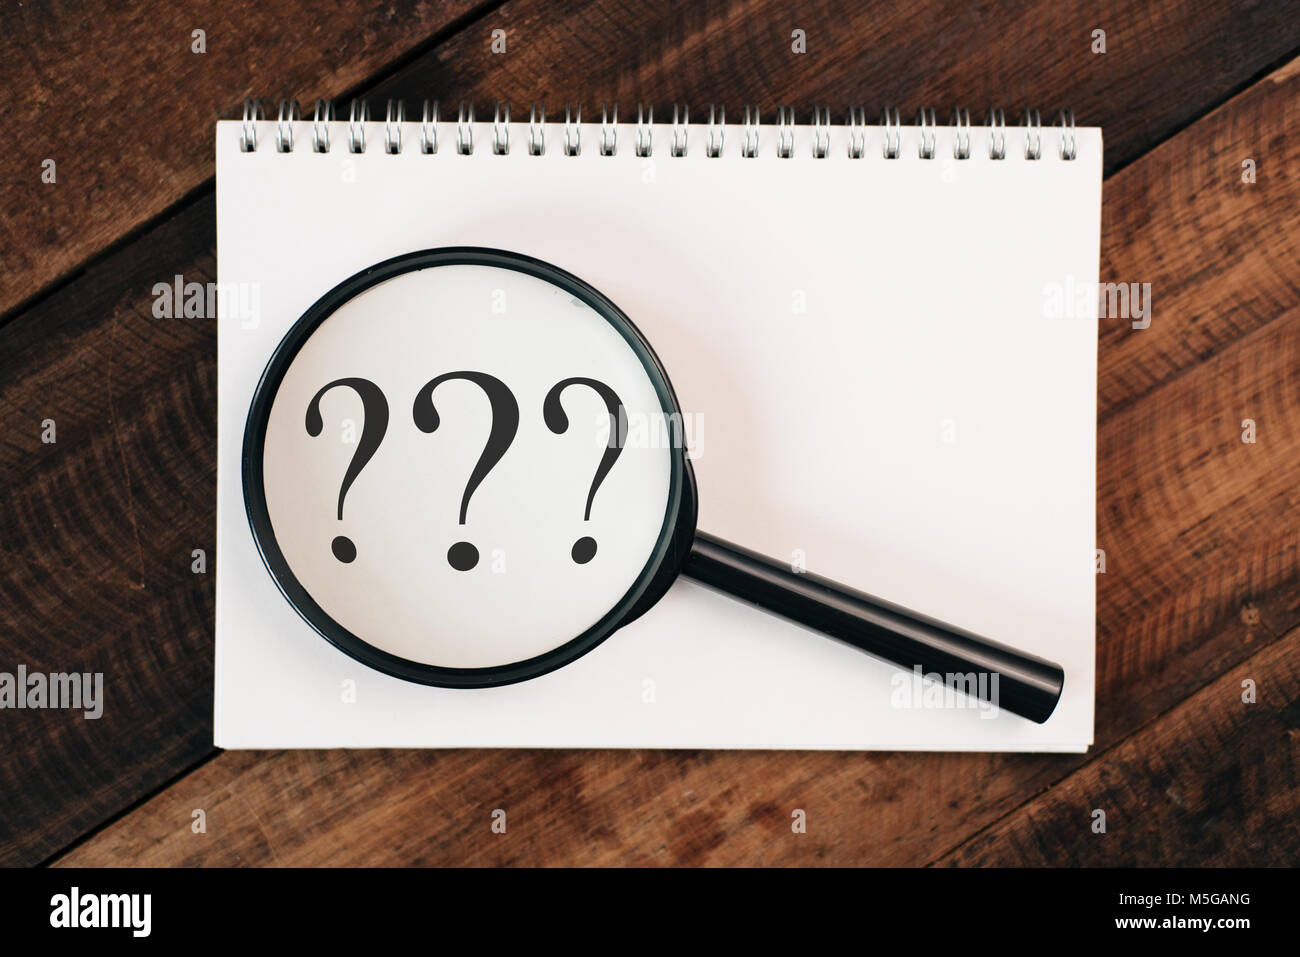 magnifying glass zooming into question mark on notebook on a wooden table. problem and research concept - Stock Image